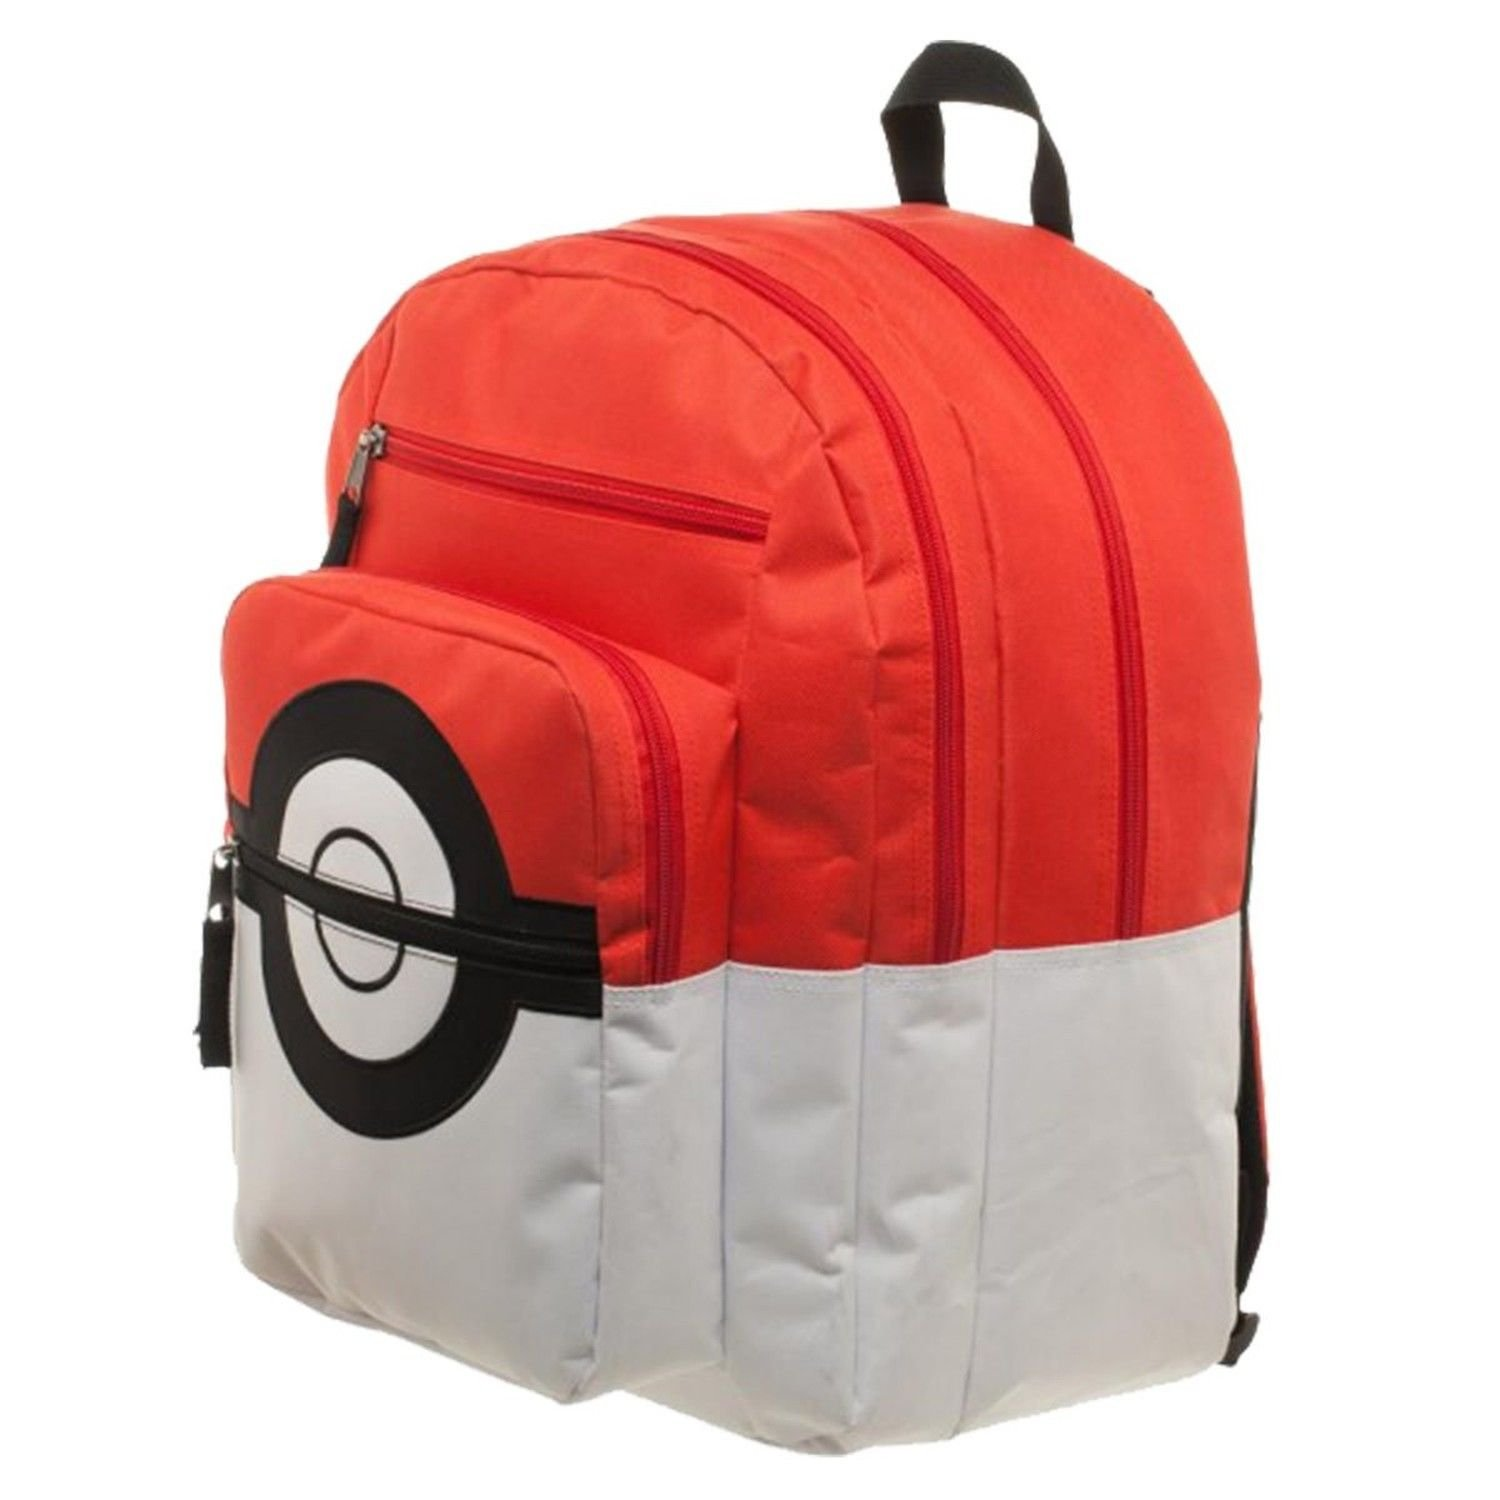 Get Quotations · Nintendo Pokemon Go Pokeball Licensed Backpack School Book  Bag Trainer Bag Charm 8dafe1ca2ecea